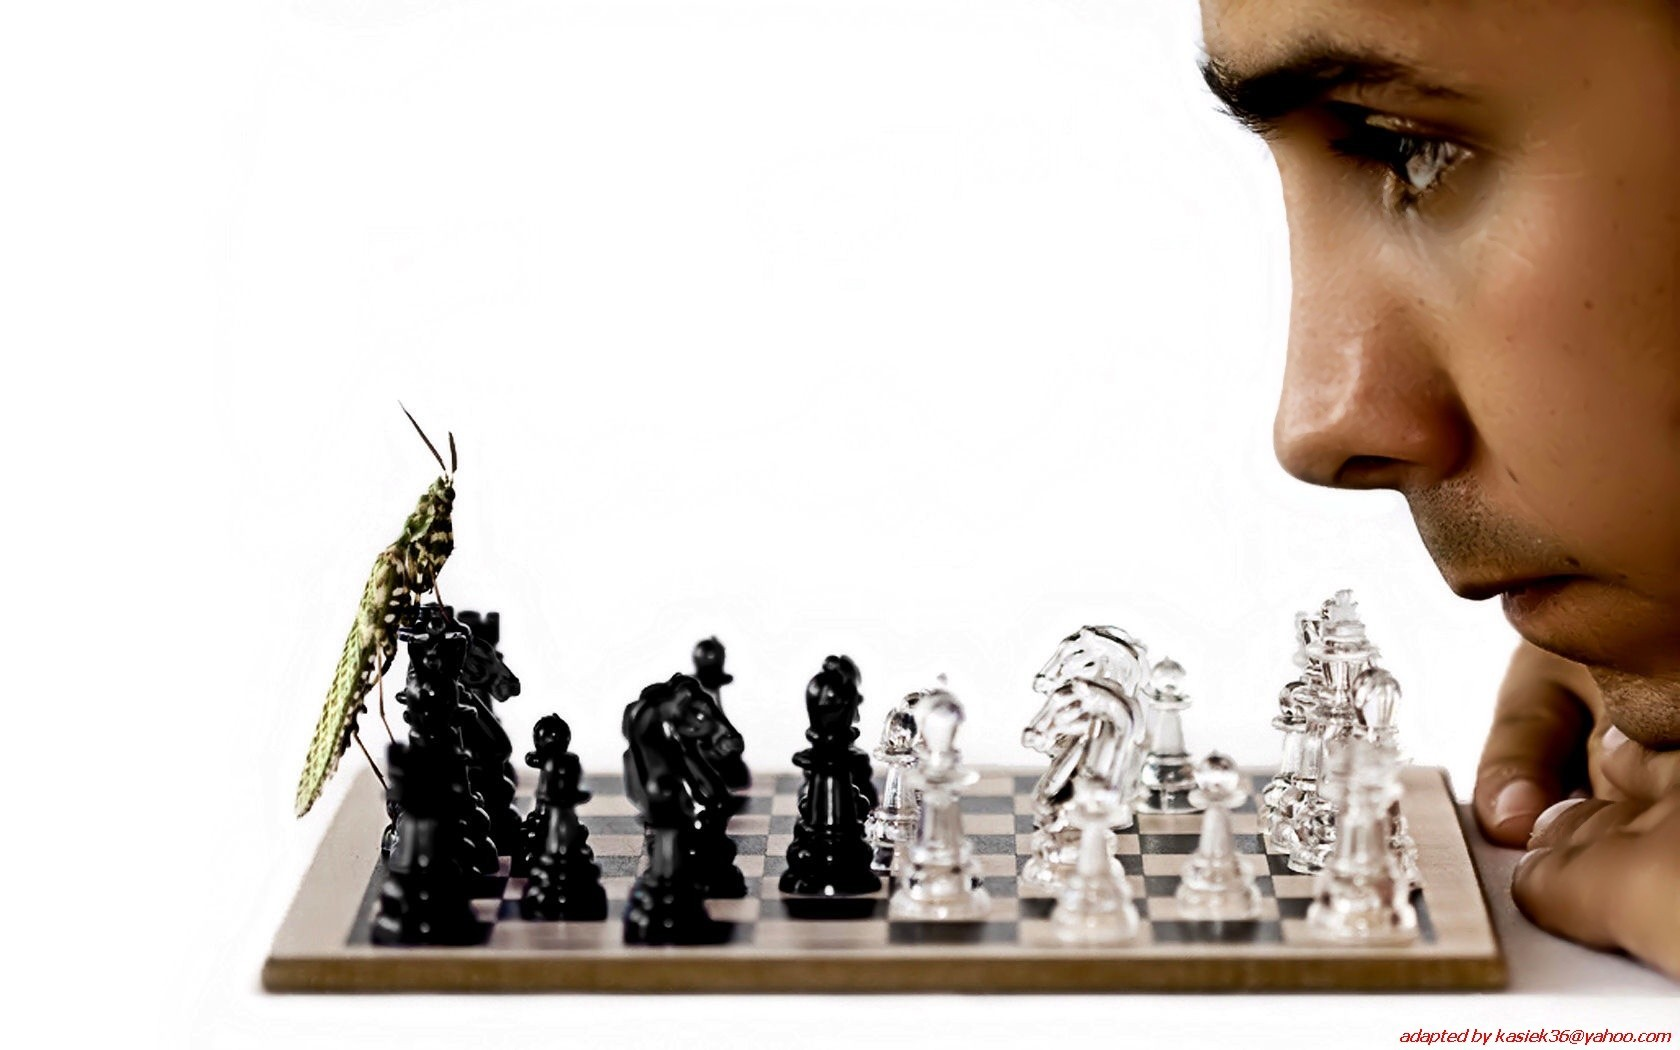 insects chess Men funny HD Wallpaper